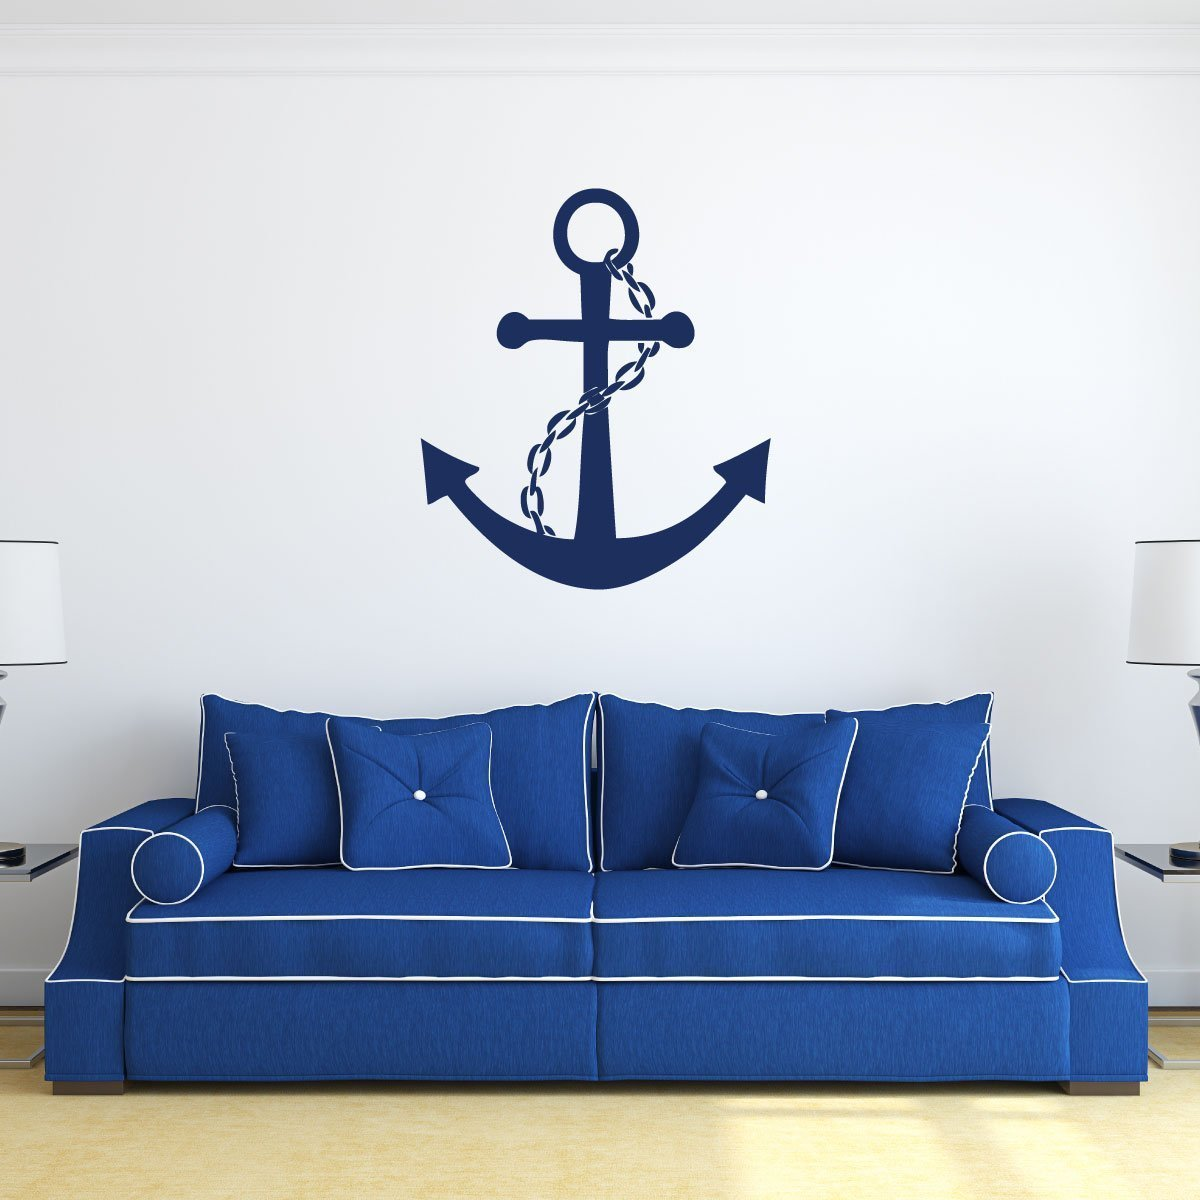 Amazon anchor wall decal vinyl sticker personalized large amazon anchor wall decal vinyl sticker personalized large nautical ocean symbol home decoration for us navy marines boys room or kids playroom amipublicfo Image collections